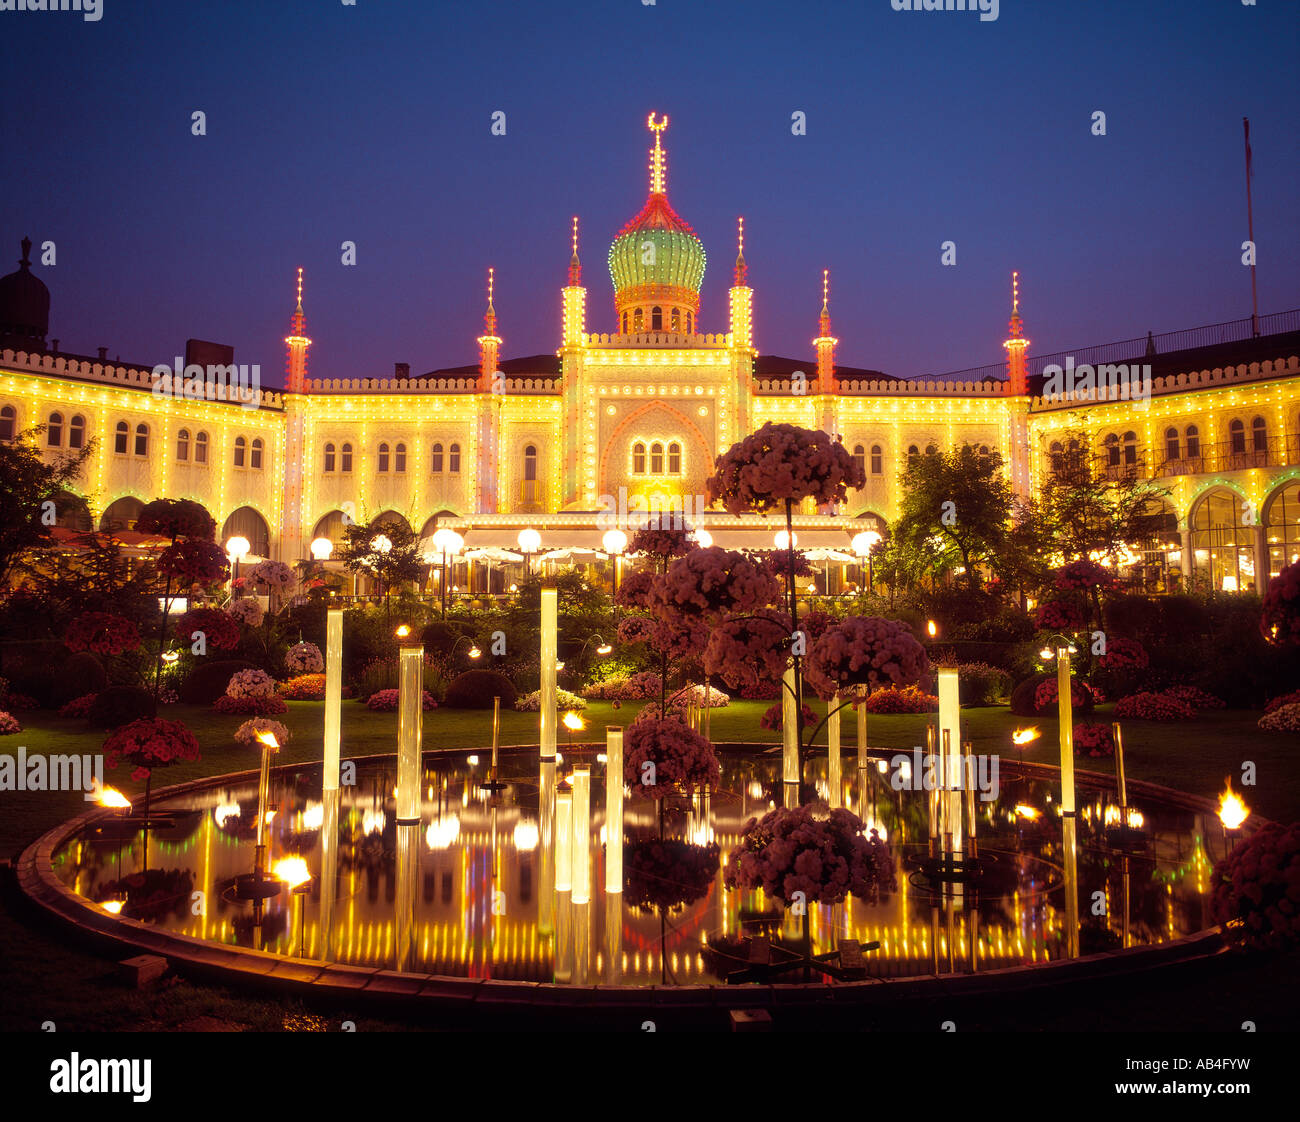 Ic Bagni Di Tivoli Filetivoli Gardens Concert Hall At Night Copenhagen